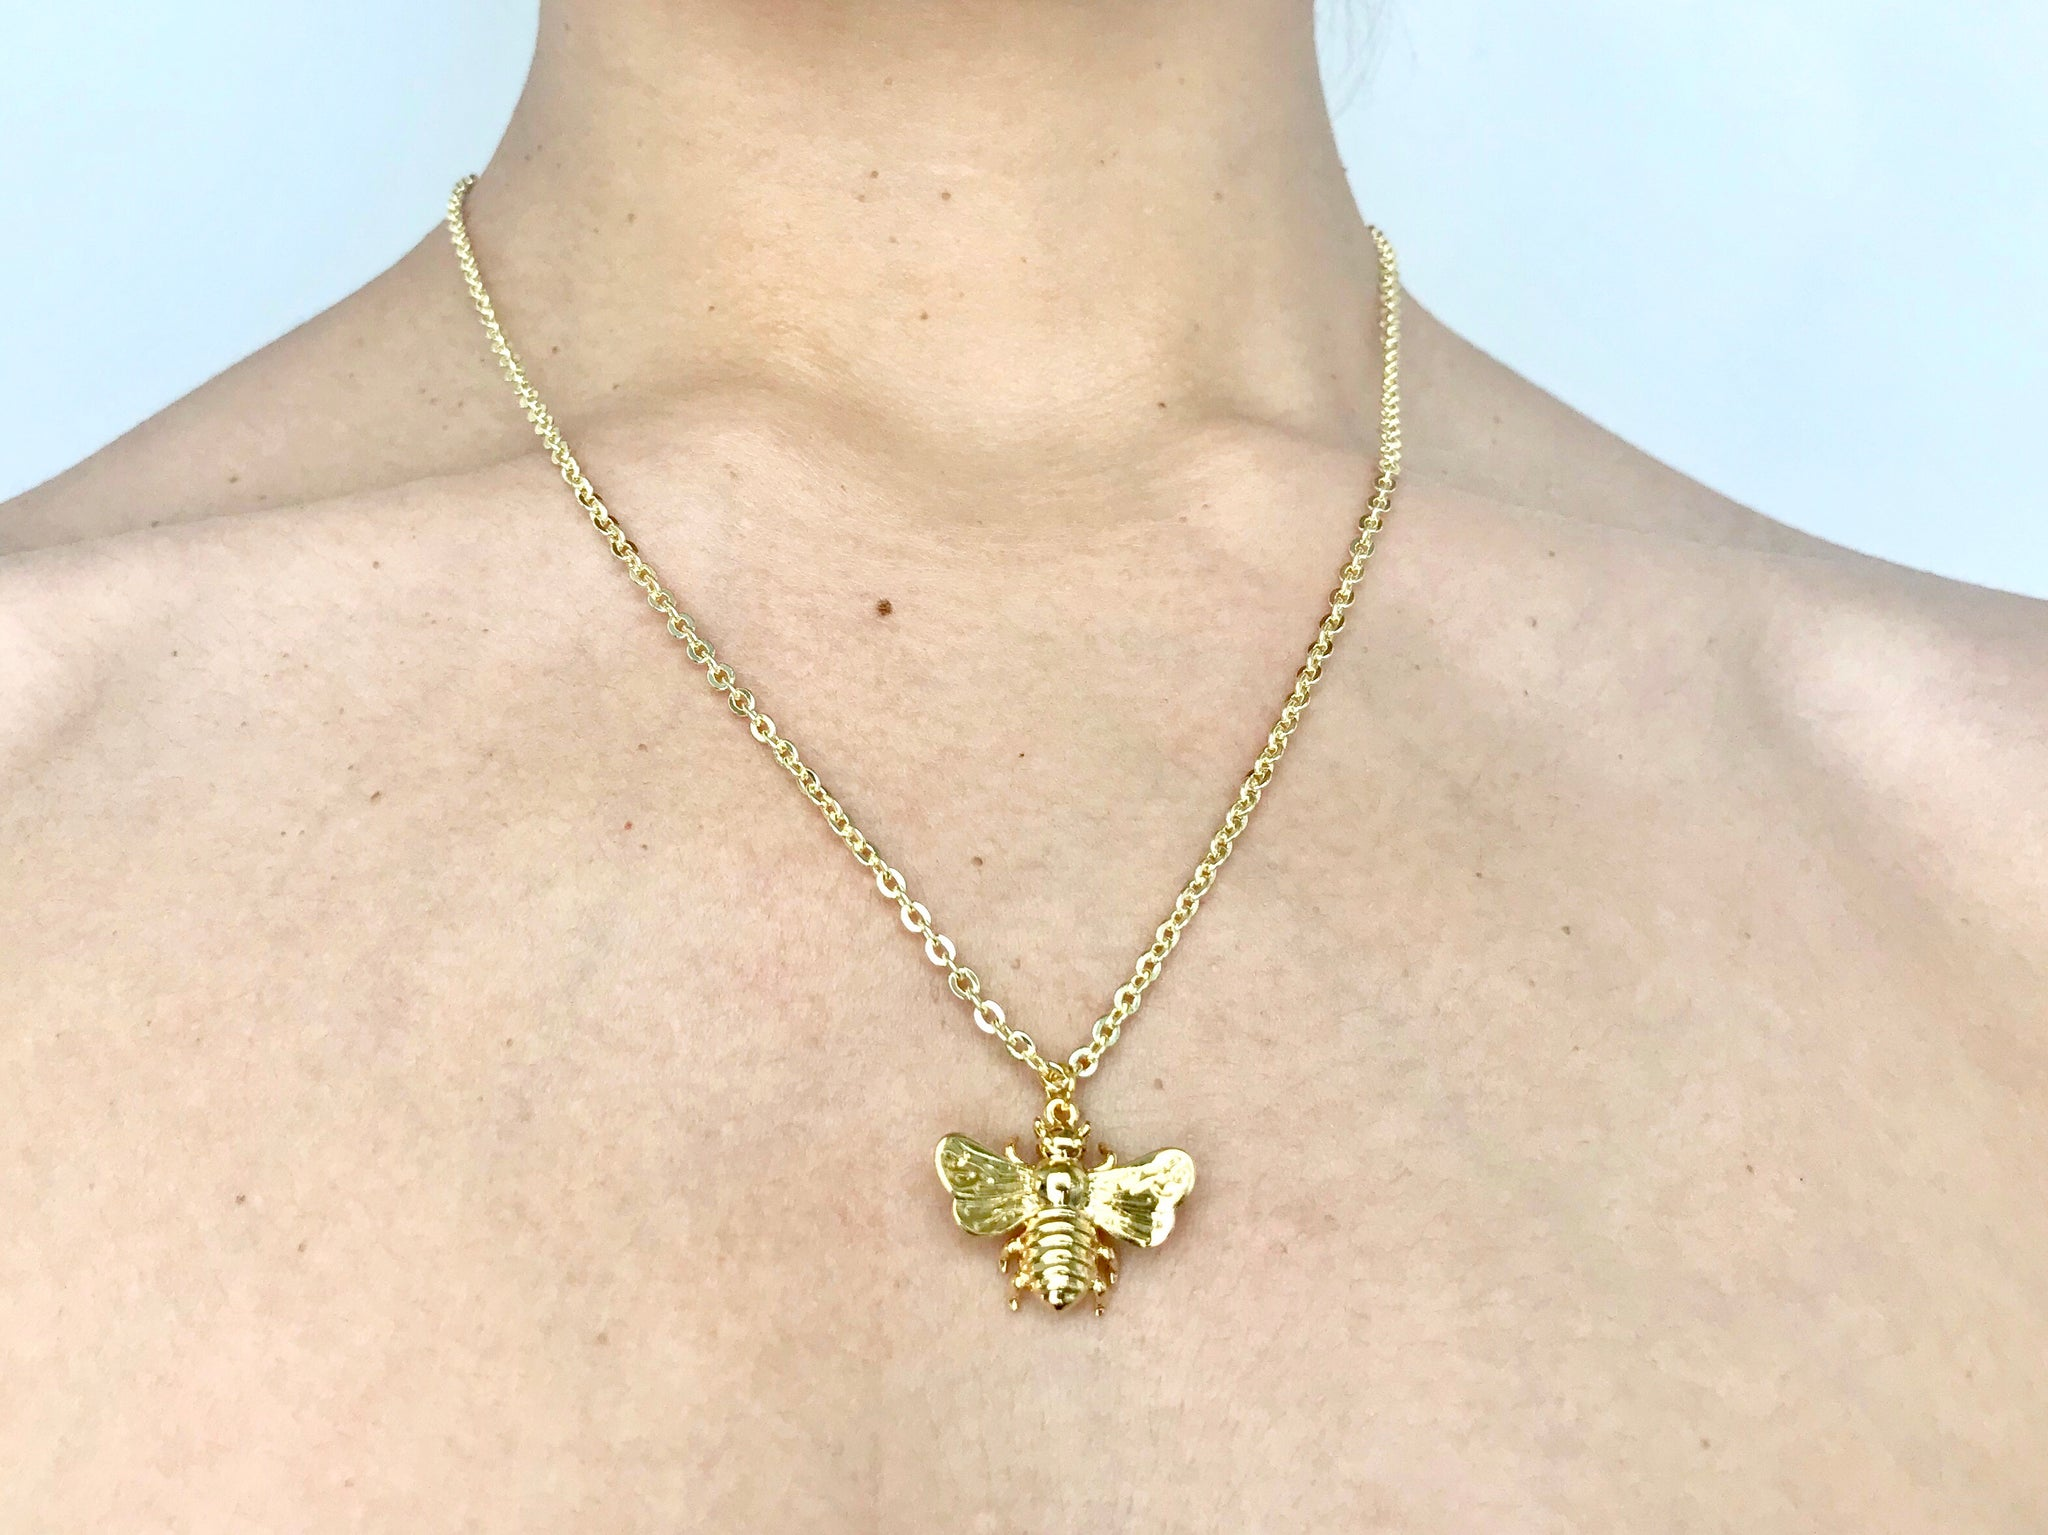 Abeille Large - (Bee necklace)